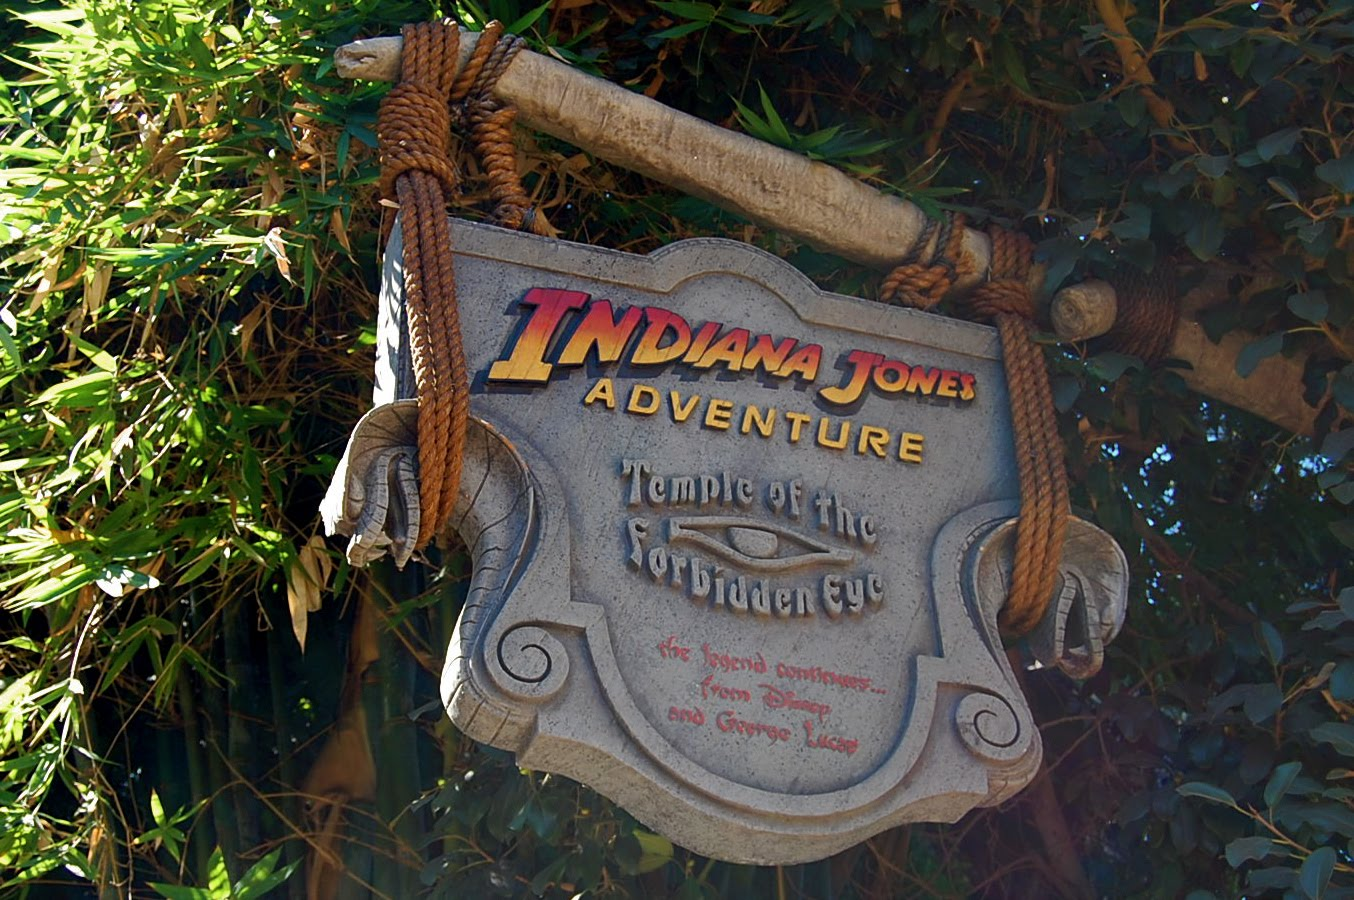 Disneyland Rides Tips - Indiana Jones has one of the longest wait times in the park